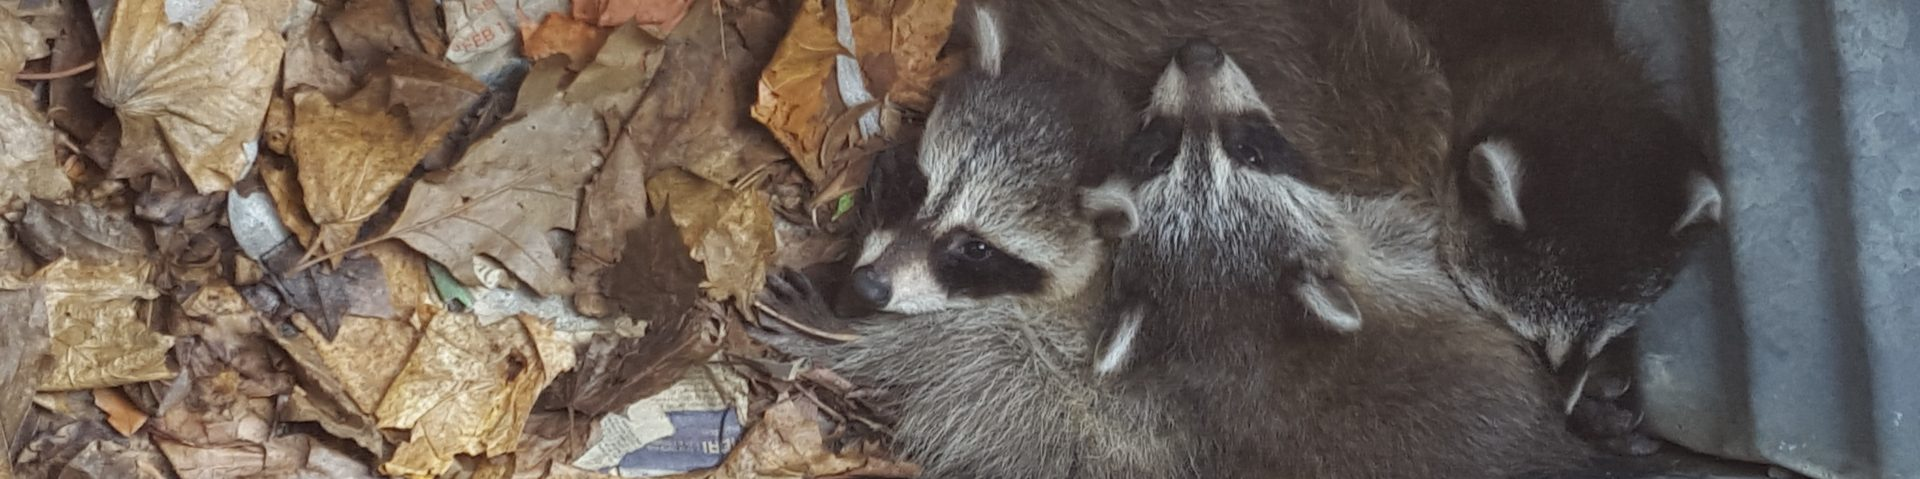 raccoon removal greater toronto area